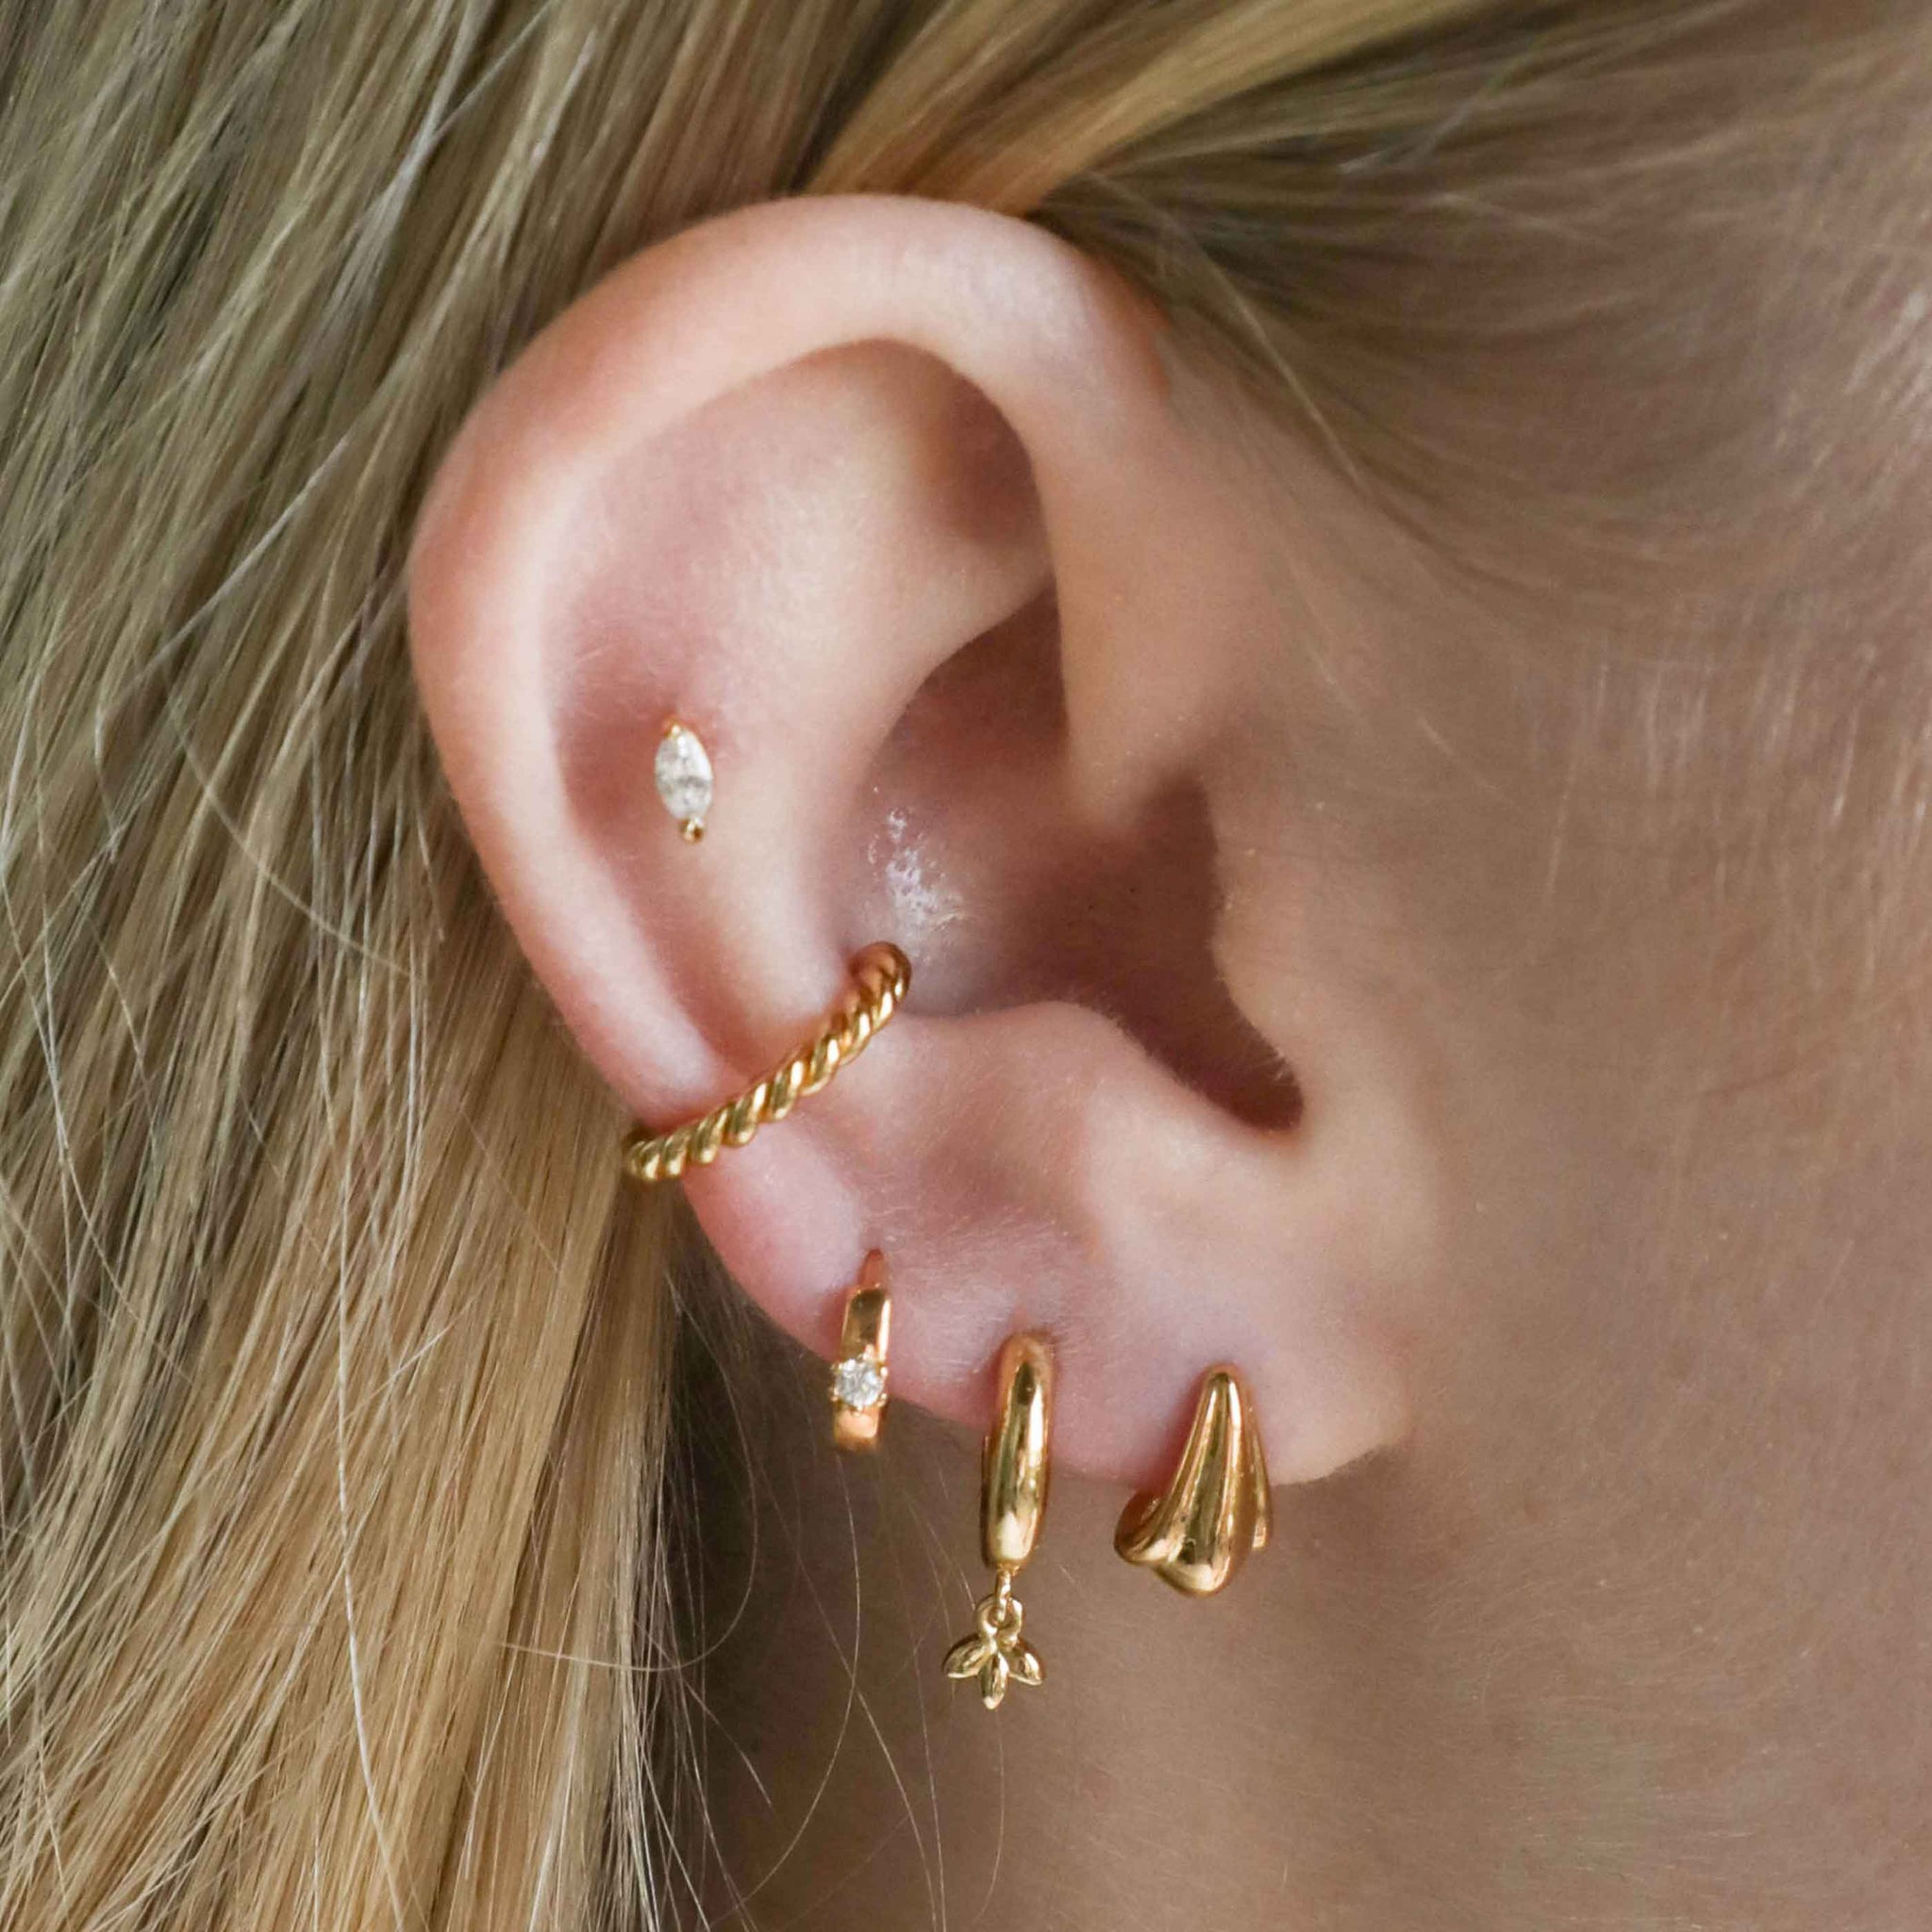 Navette Stud Earrings in Gold worn in outer conch